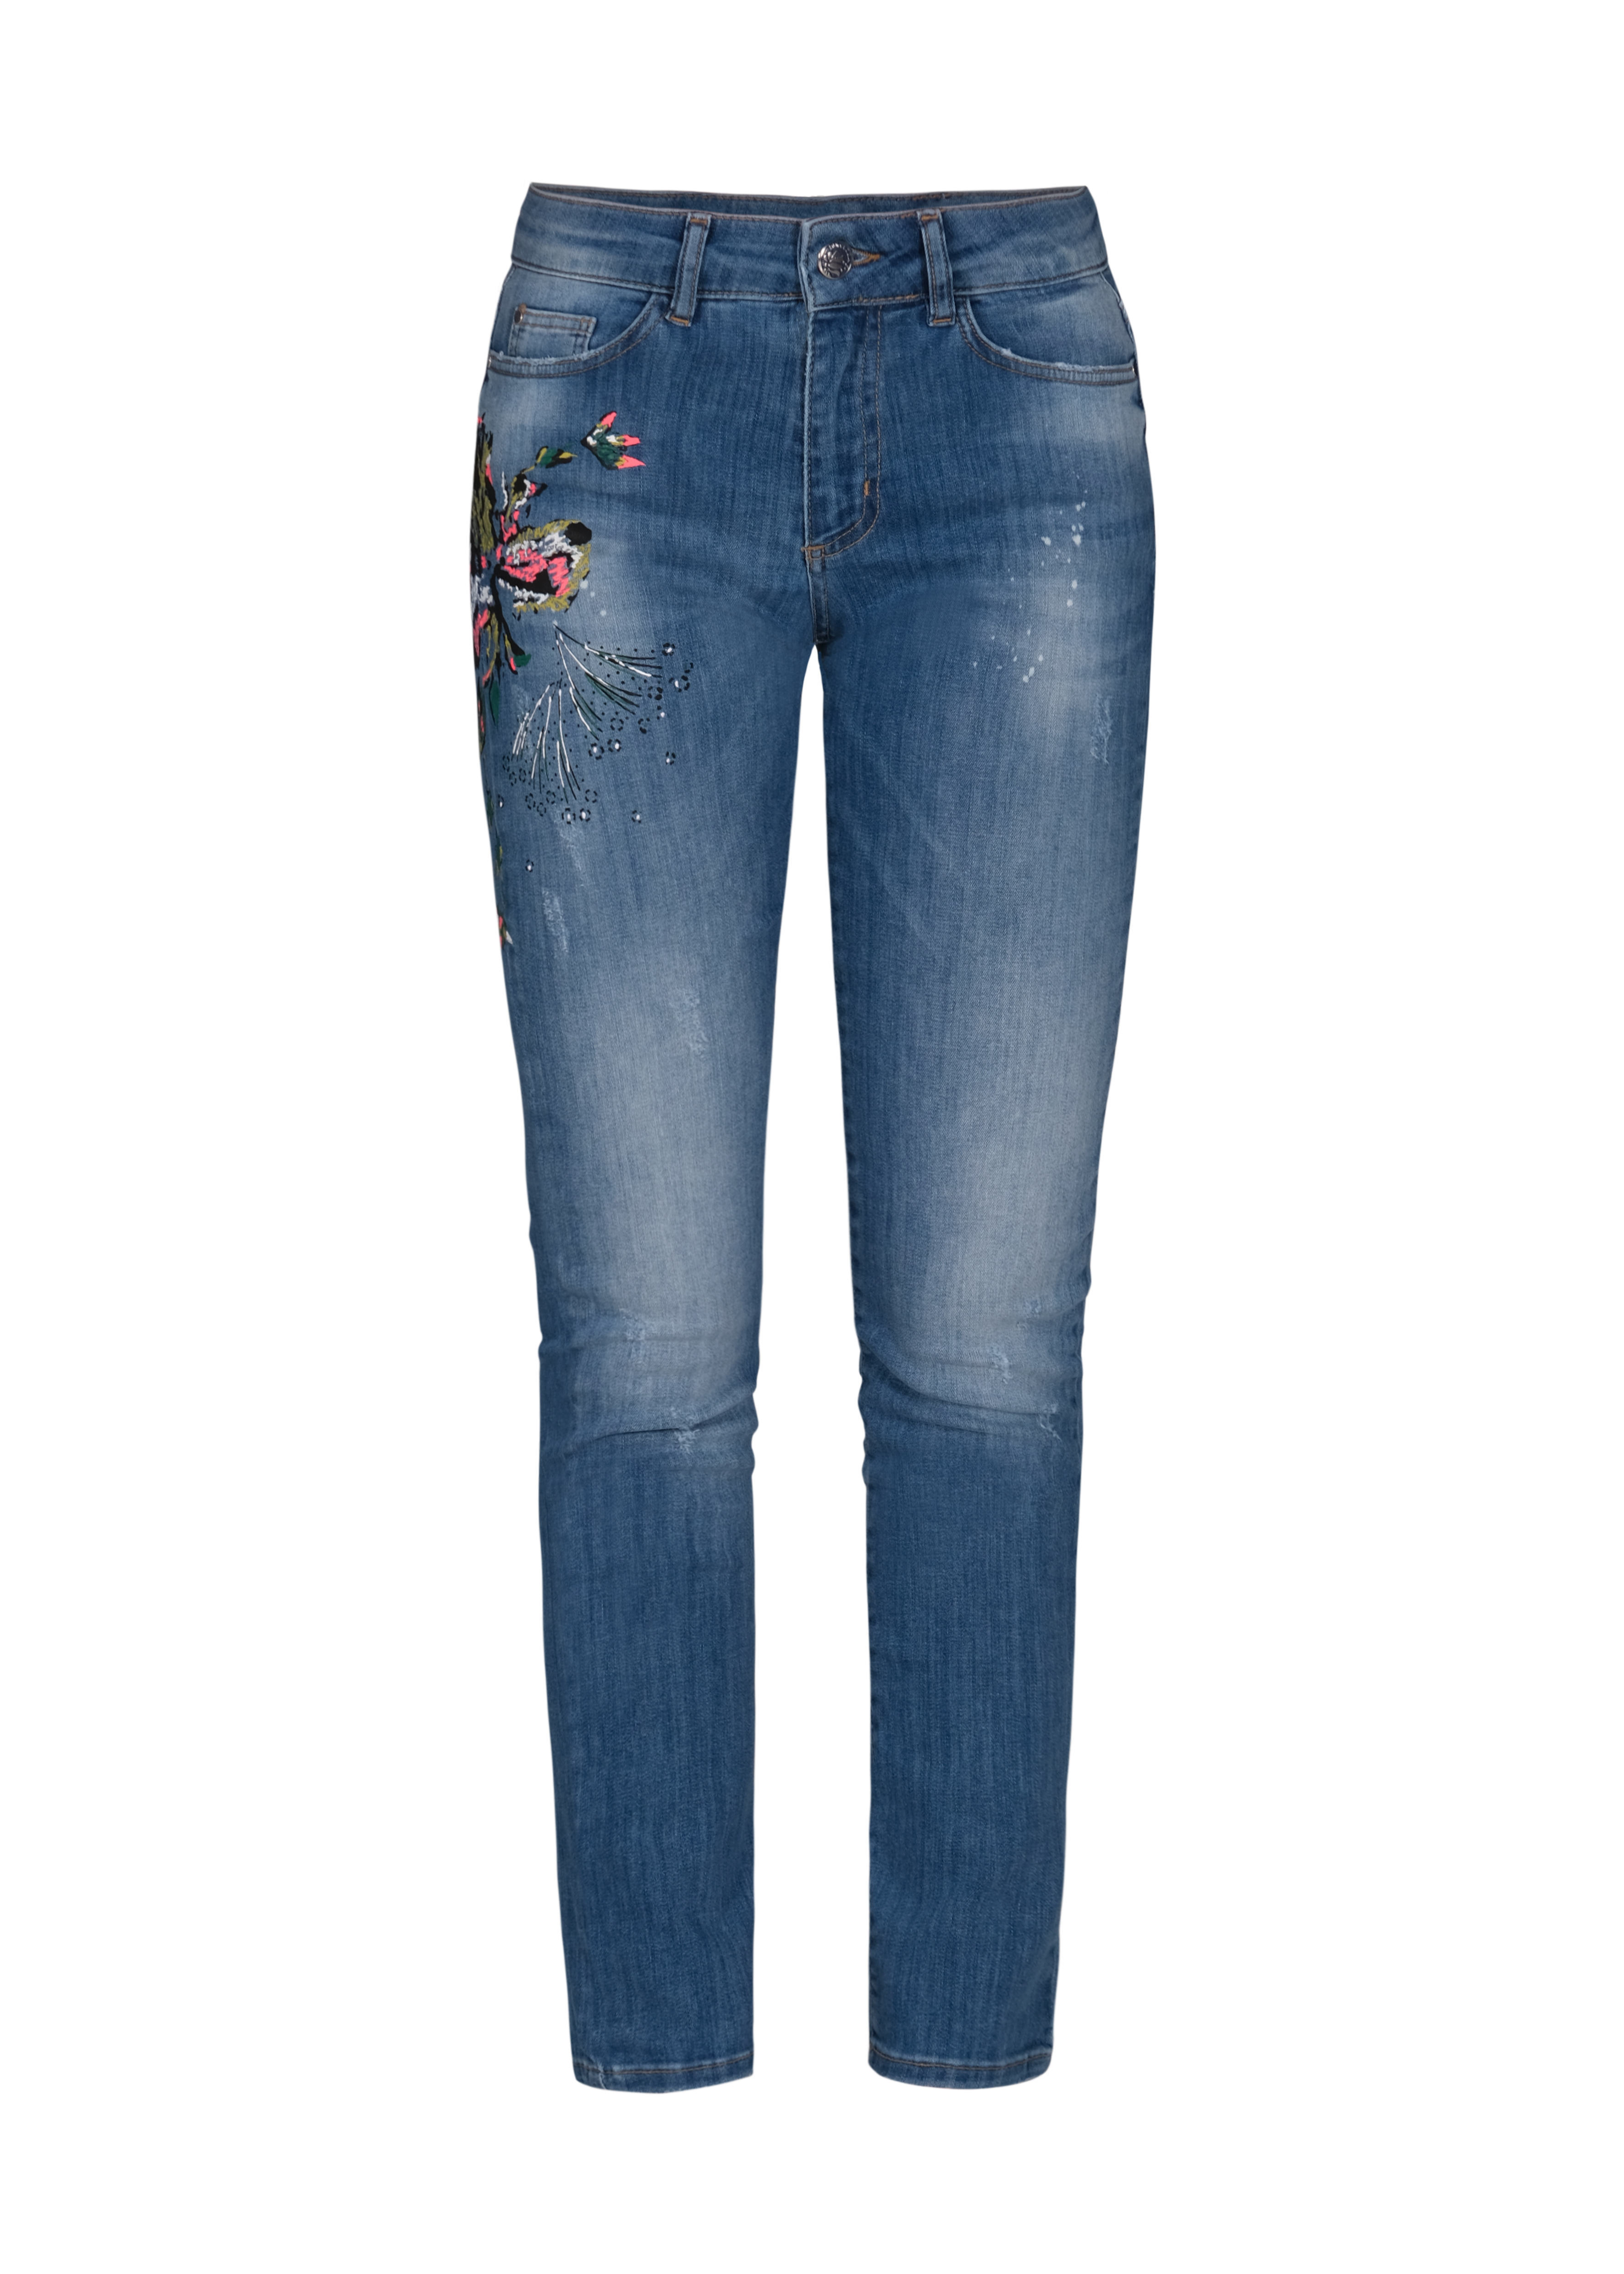 Dolcezza: Comfort Created Pink Butterfly Painted High Waisted Jeans Dolcezza_21305